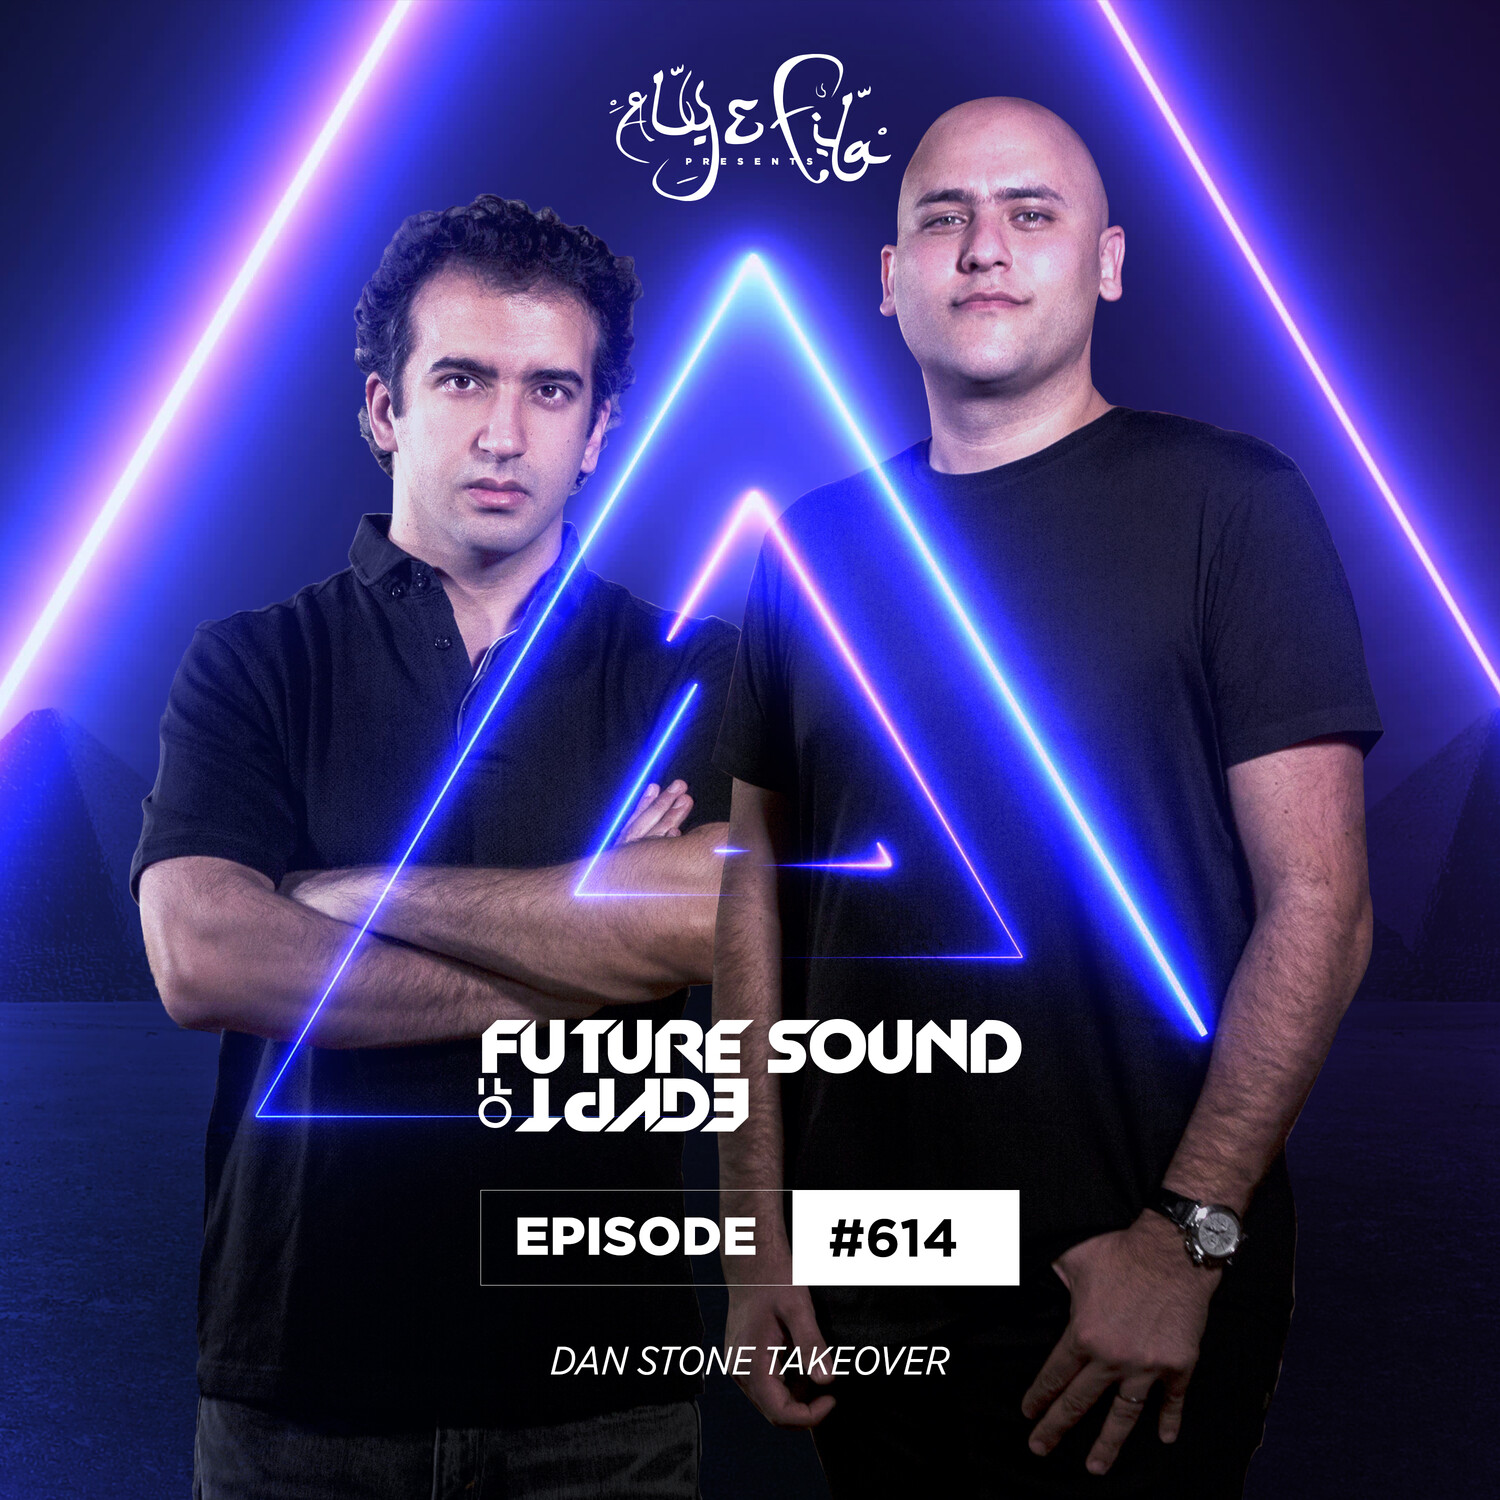 Aly & Fila — Future Sound of Egypt #614(Dan Stone Takeover)